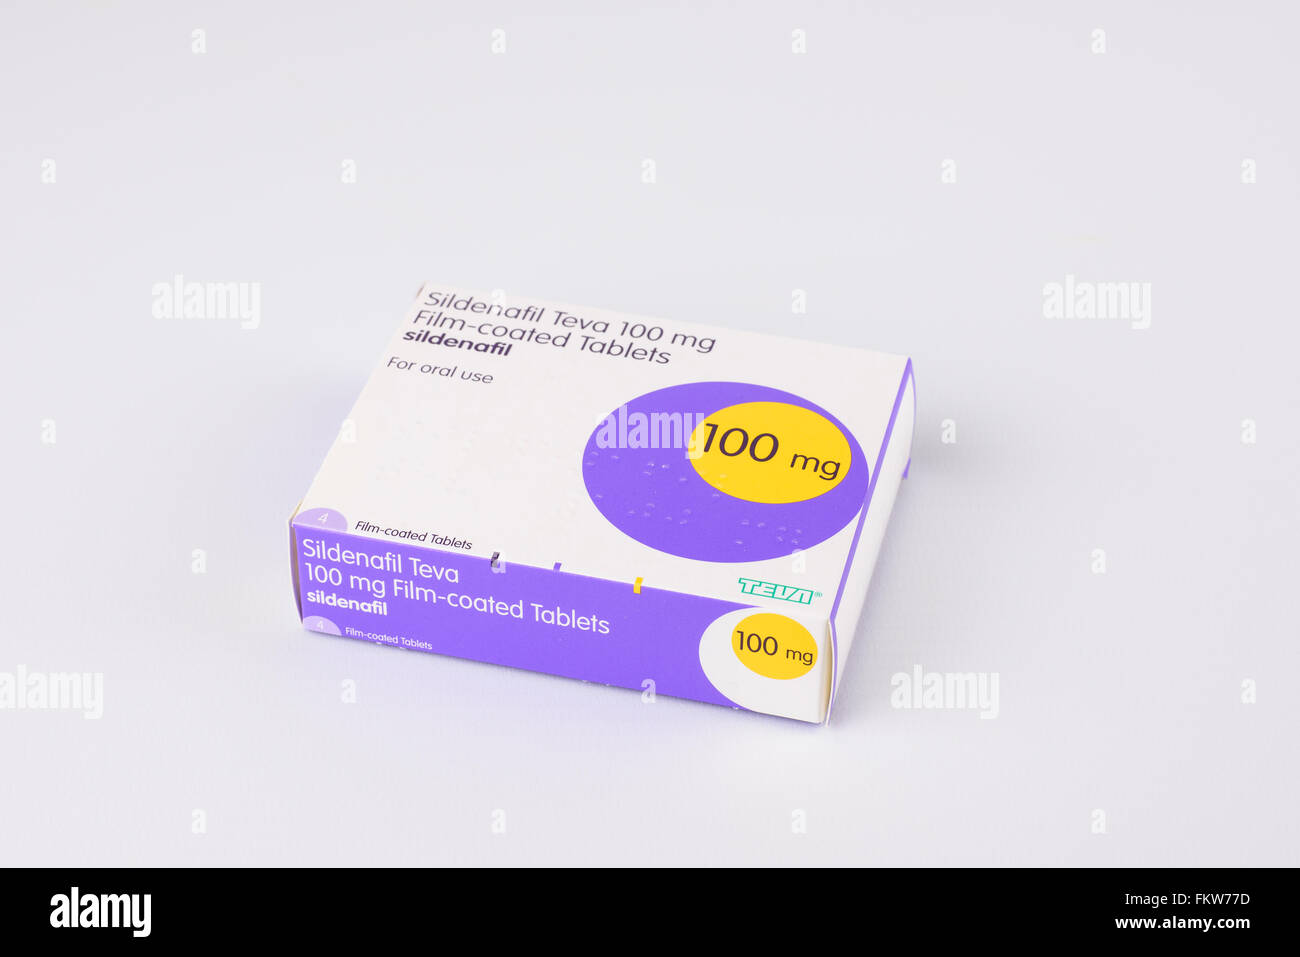 Packet of 100mg Sildenafil (generic Viagra) capsules against a white background - Stock Image